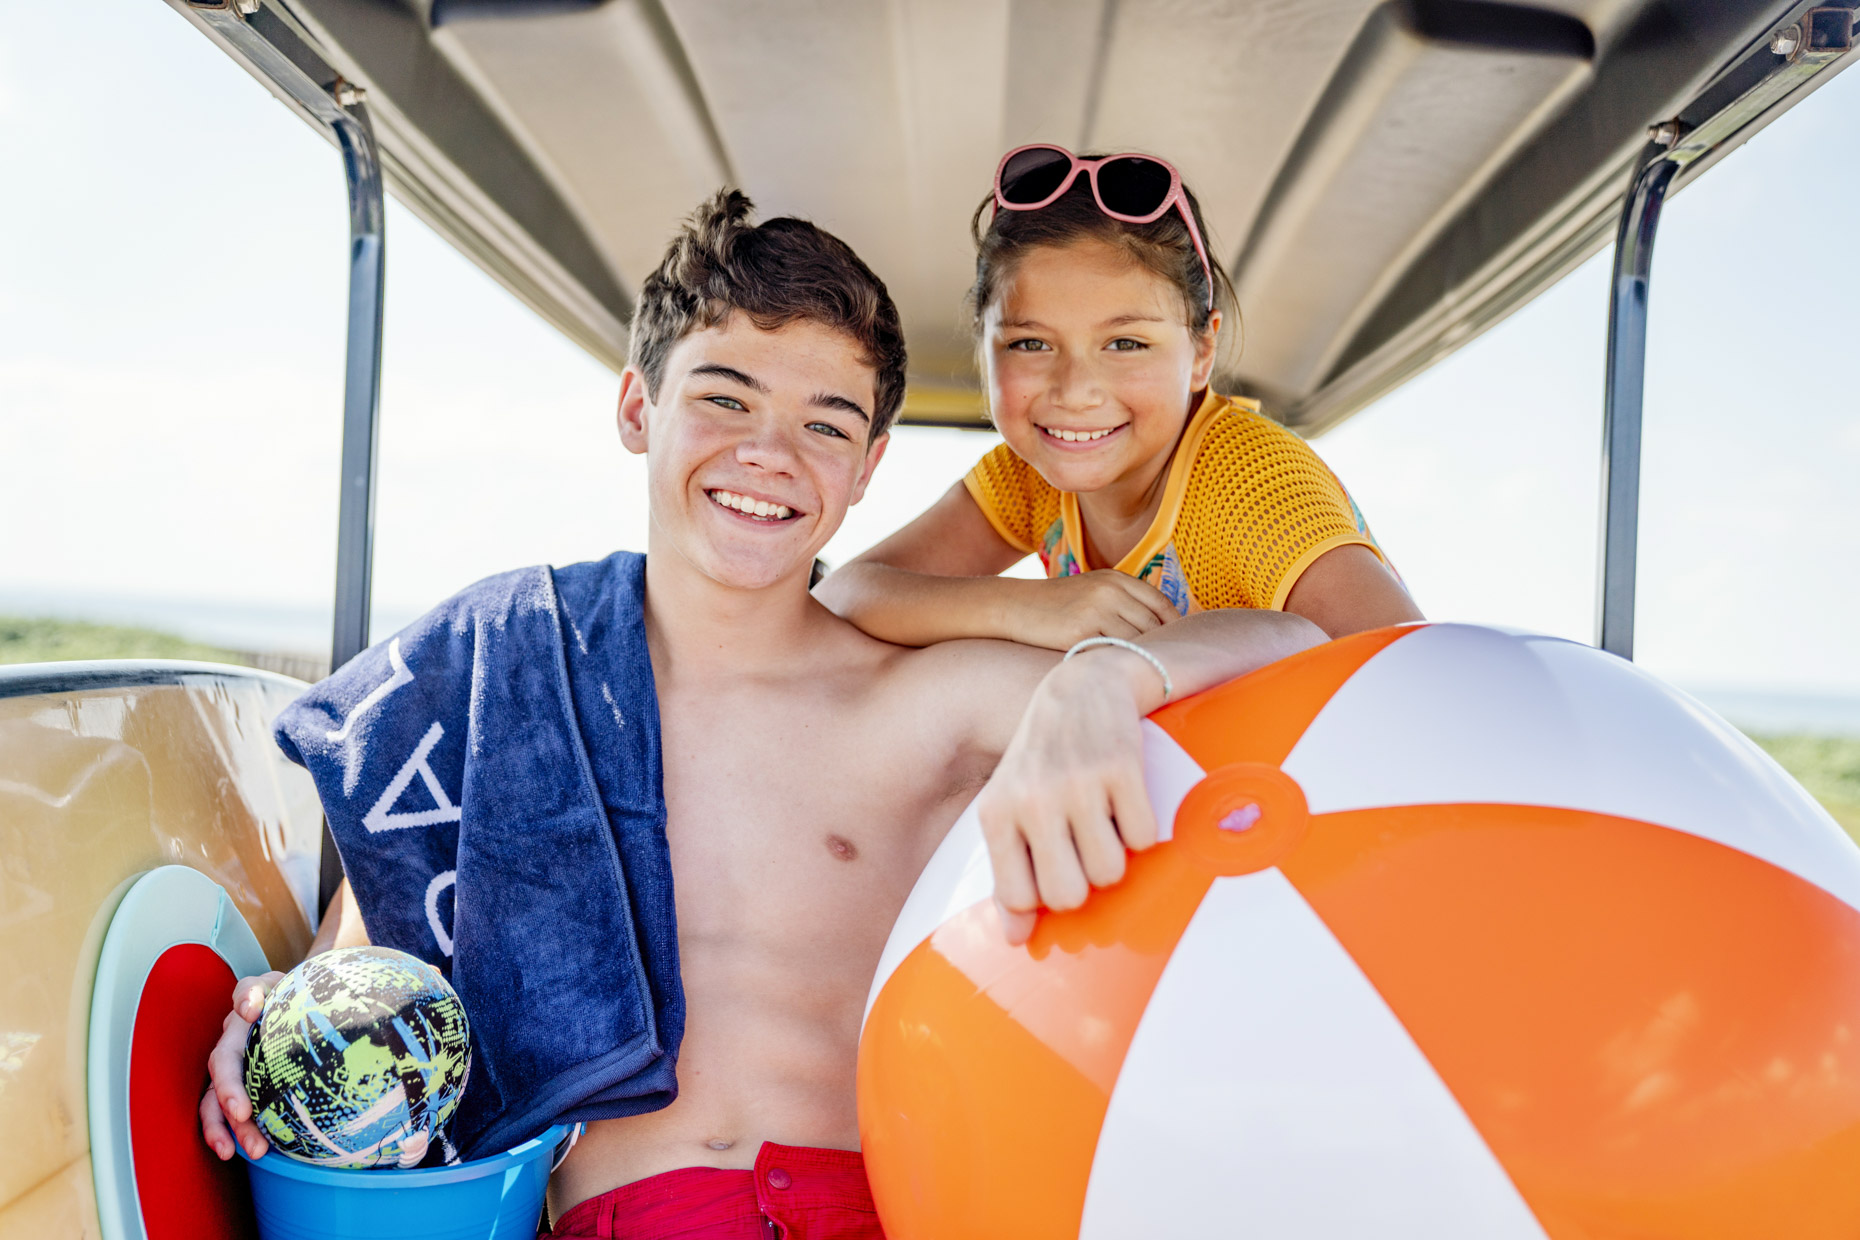 Teen boy and sister on golf cart with beach ball and surfboard